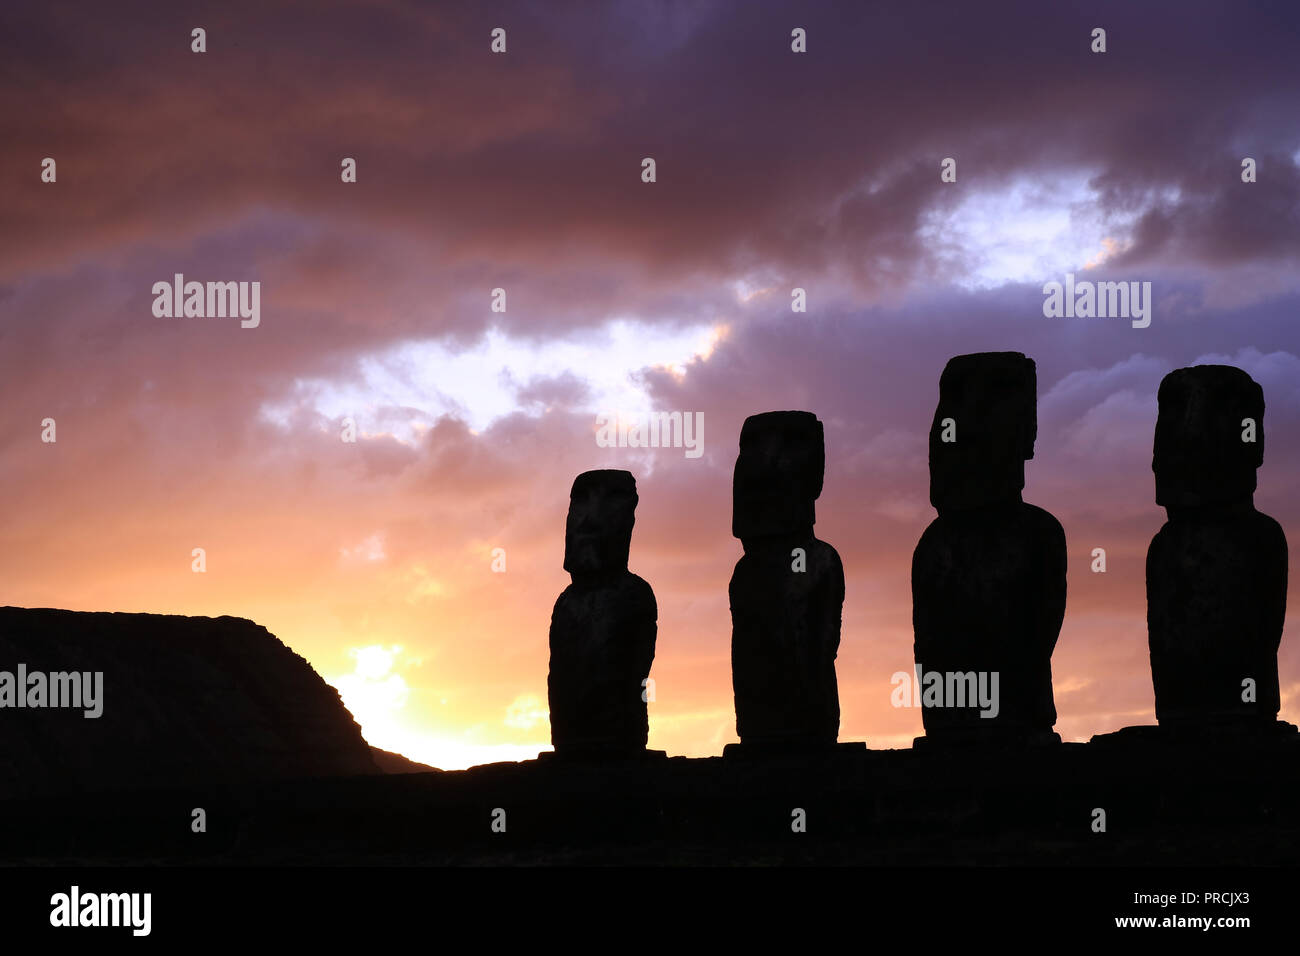 Stunning Purple Sunrise Cloudy Sky over the Silhouette of the Giant Moai statues of Ahu Tongariki Archaeological Site, Easter Island, Chile - Stock Image